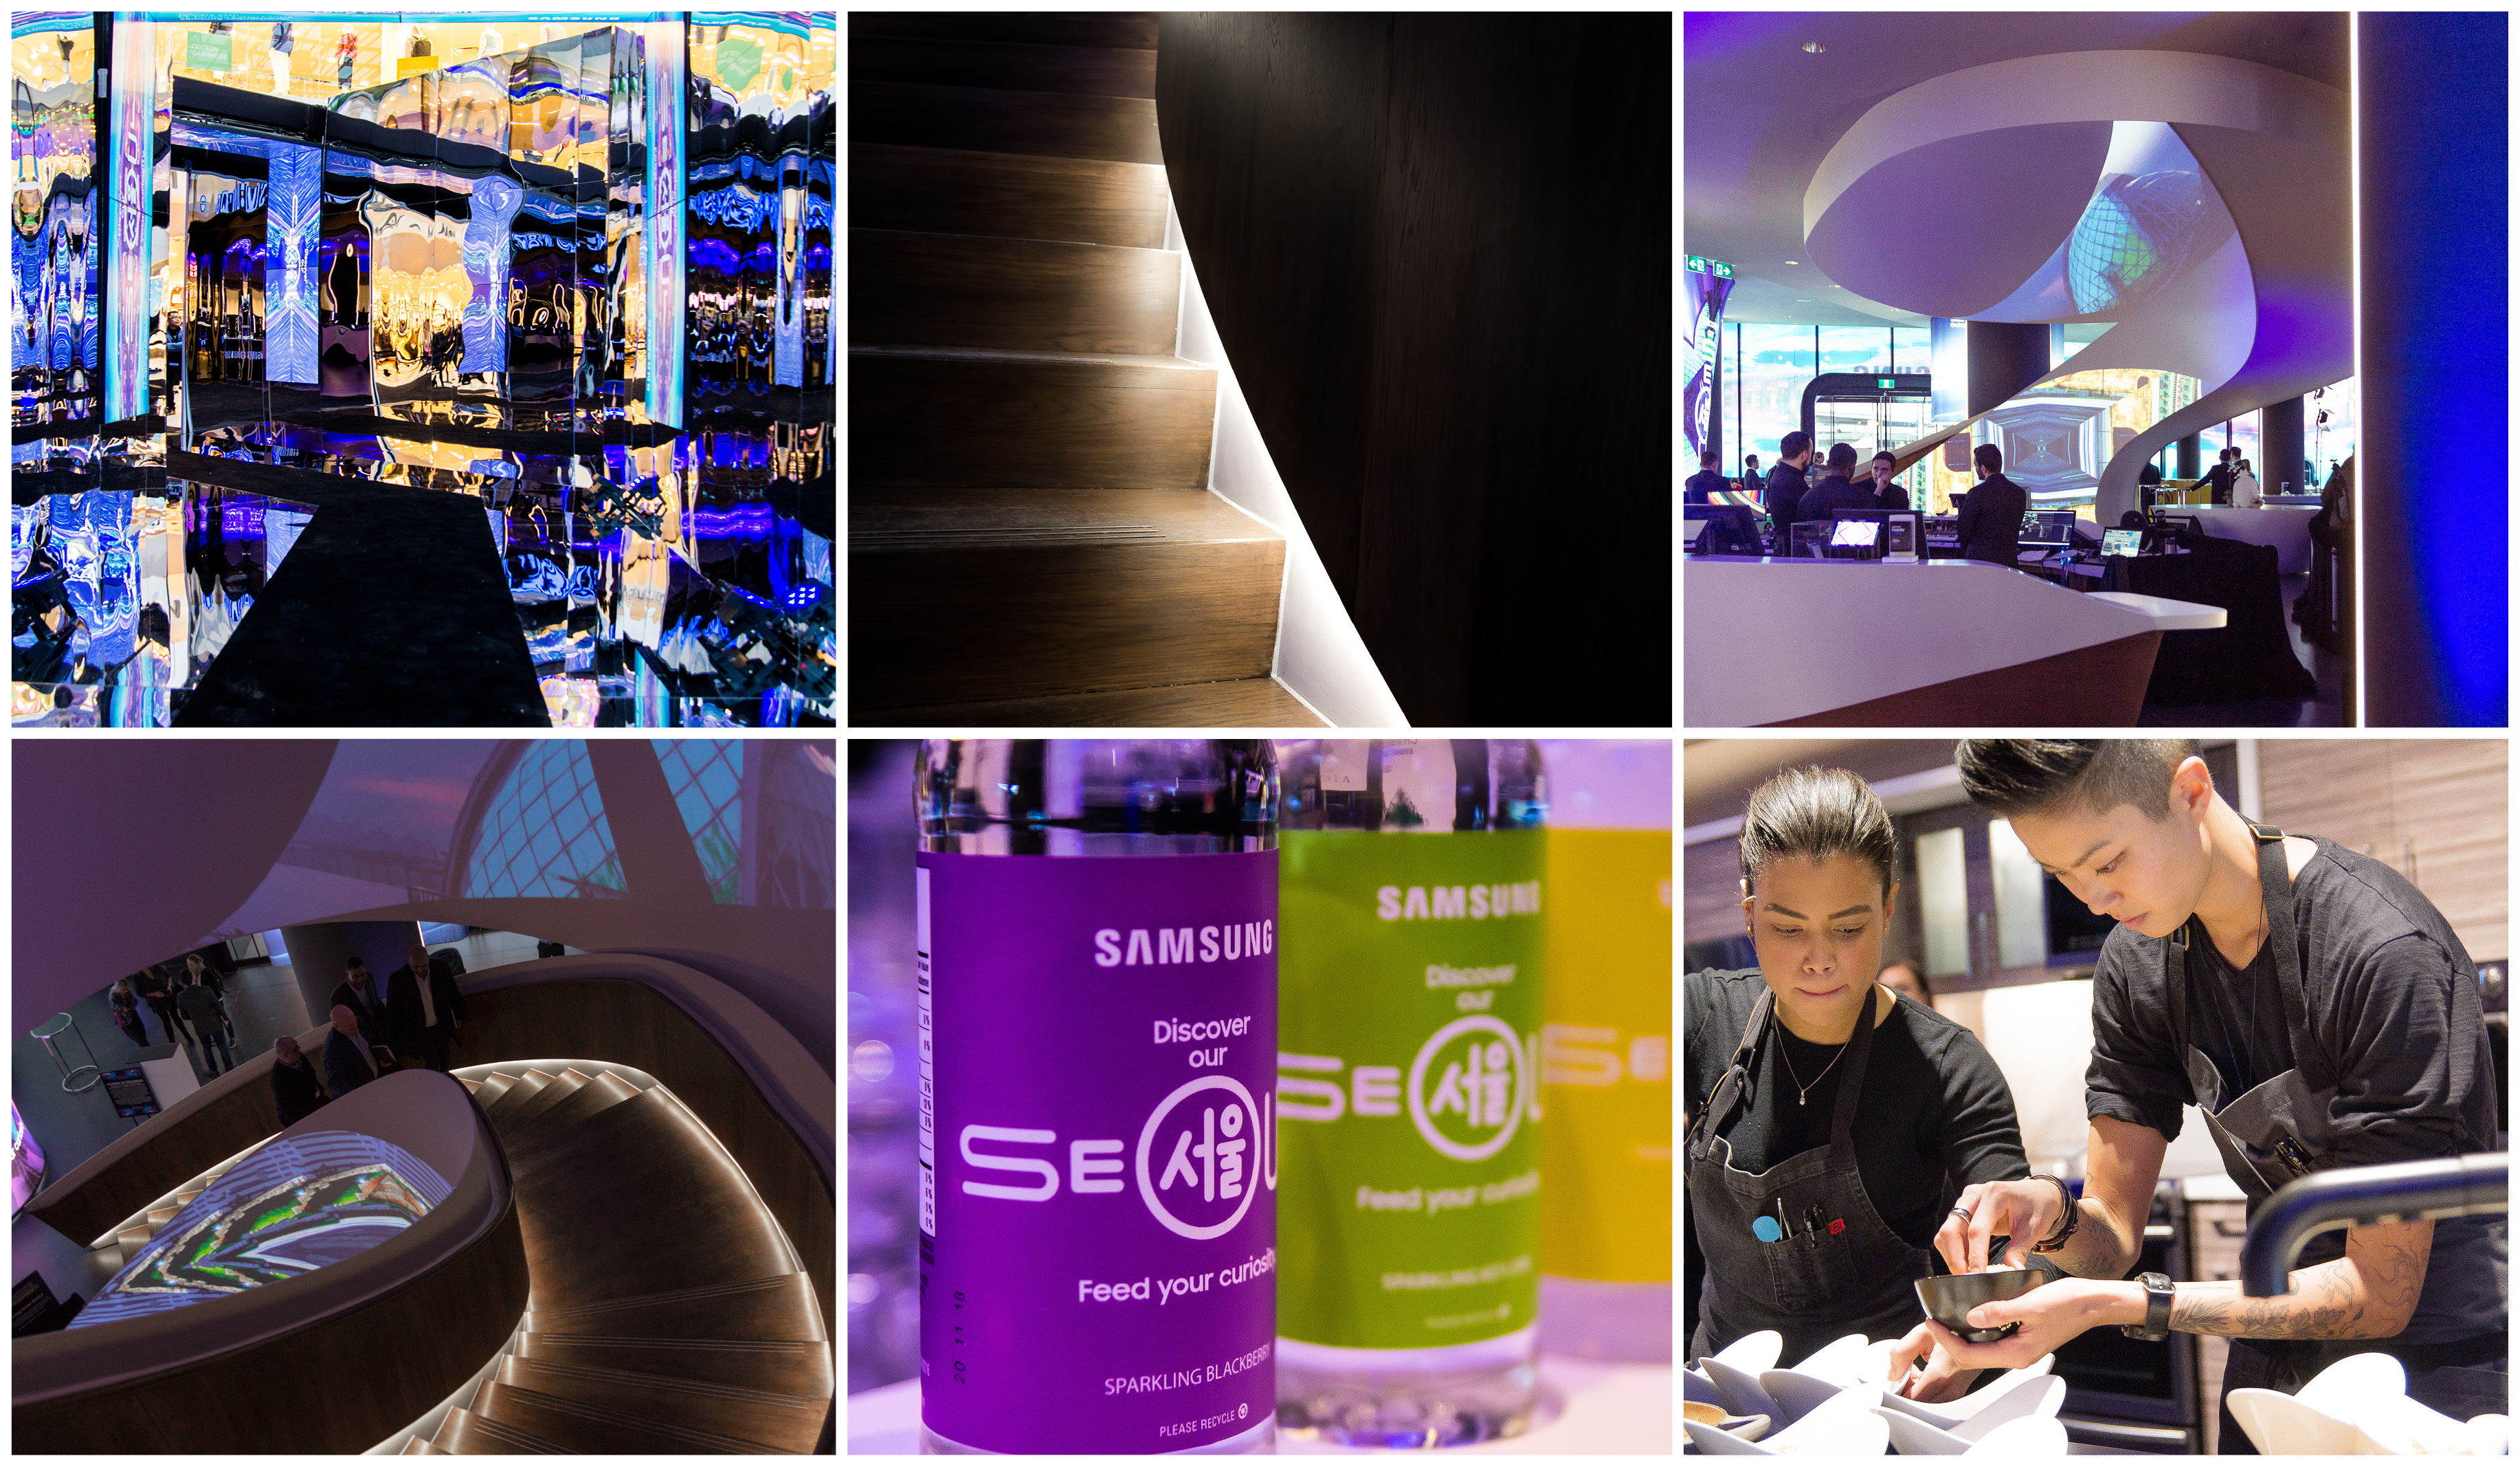 a collage of photos from the Samsung Experience Store showing closeup of the stairs, celebrity chef Kristen Kish, and colourful light projections on the walls